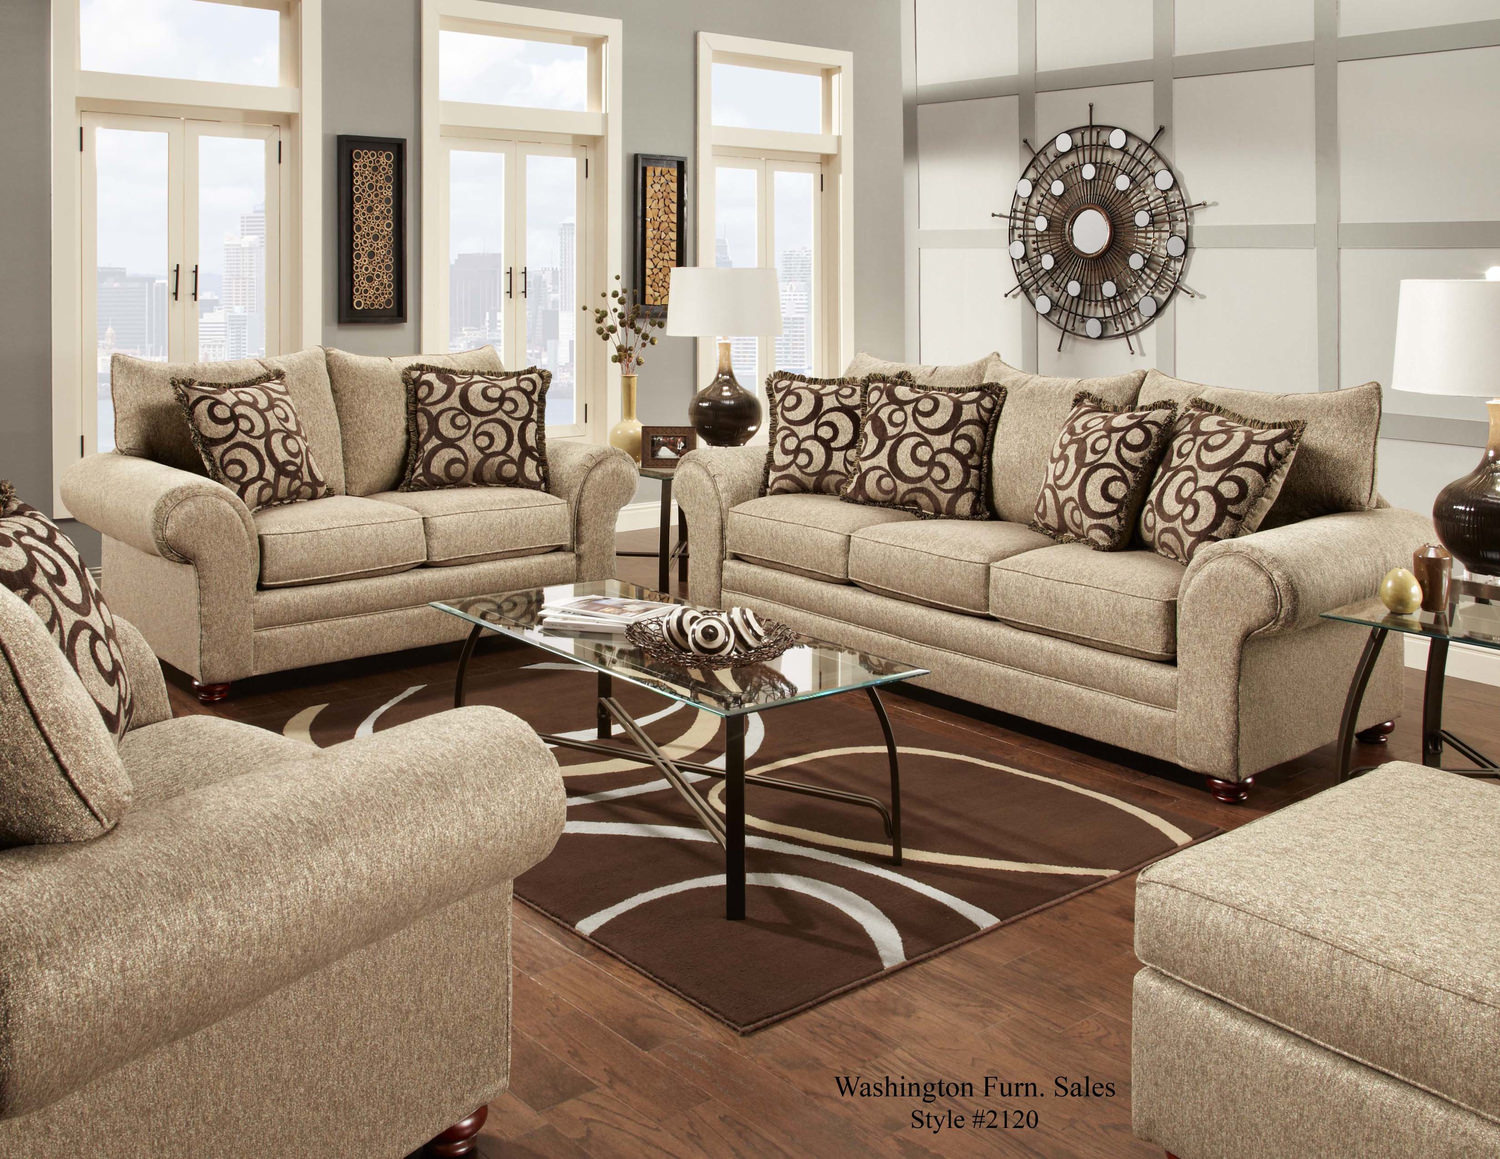 Bliss Sofa Spend A Good Deal Less On Furniture In